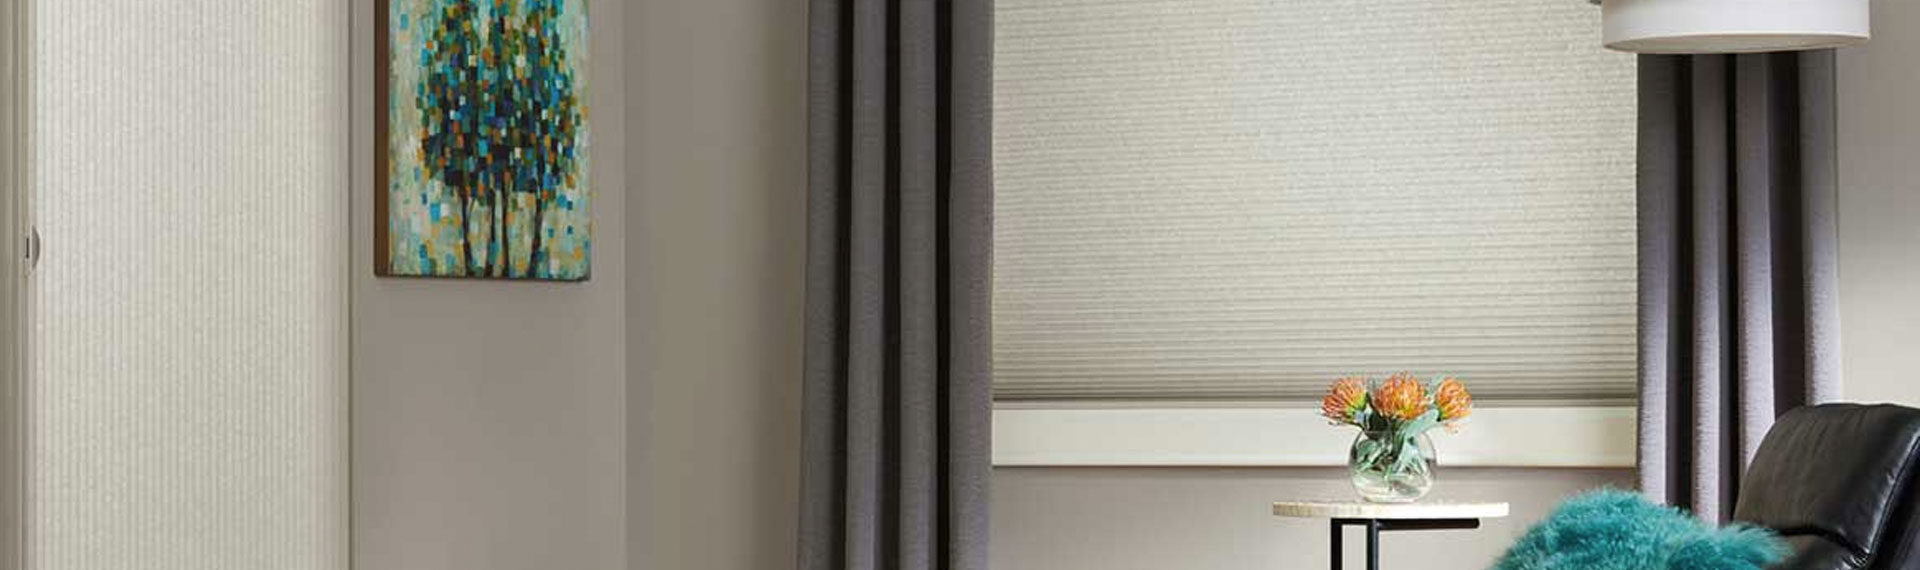 Duette® Honeycomb Shades